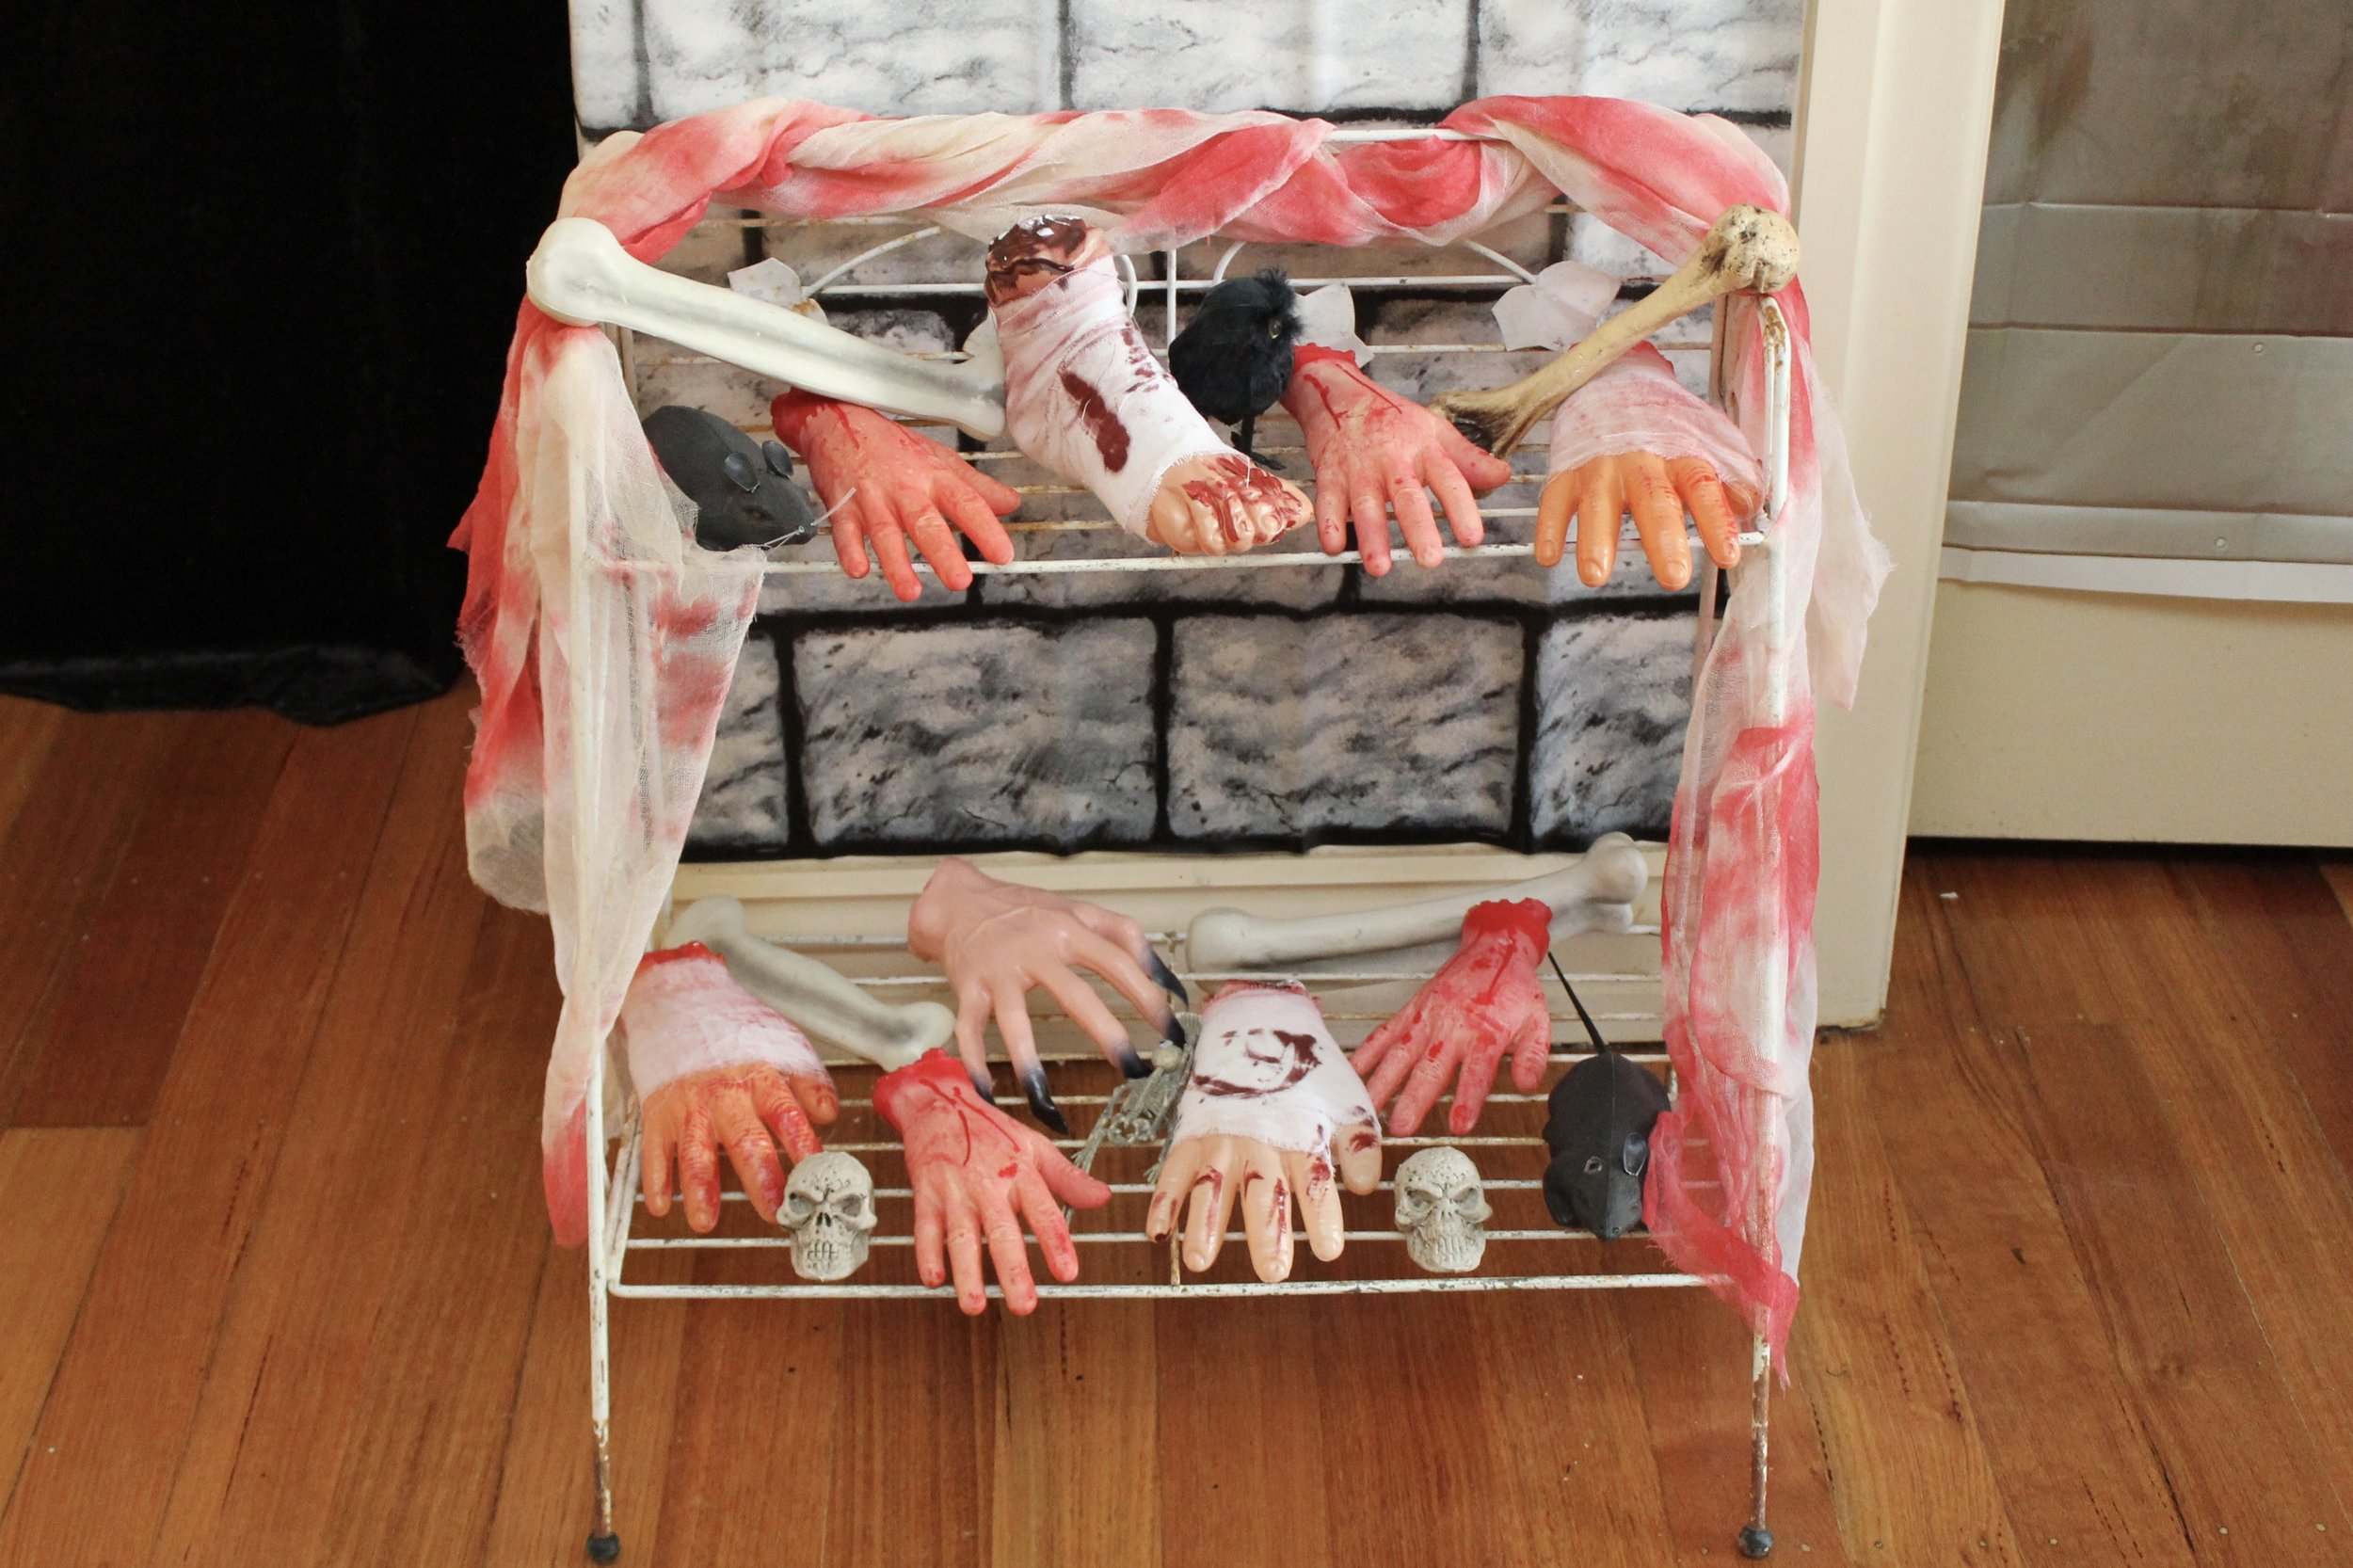 The Walking Dead severed hands